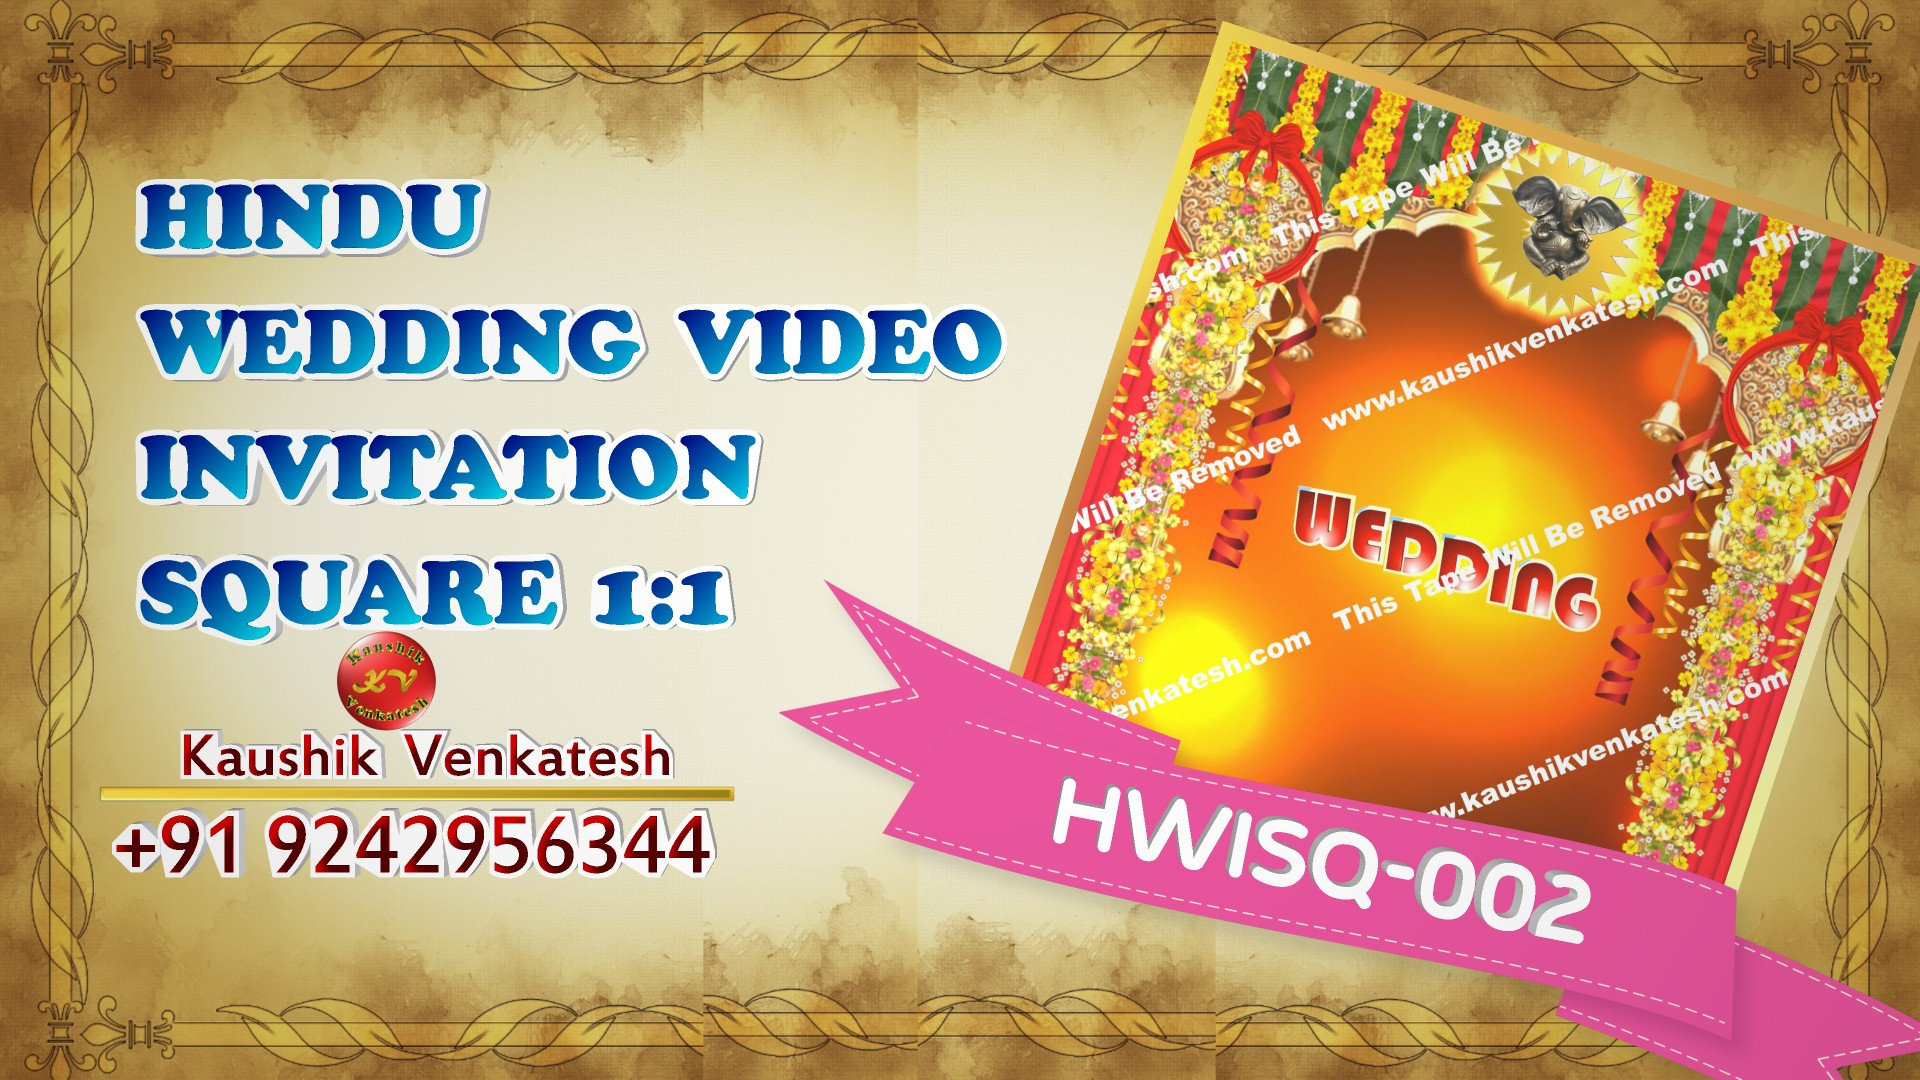 Square Video of Hindu Wedding Invitation for Mobile